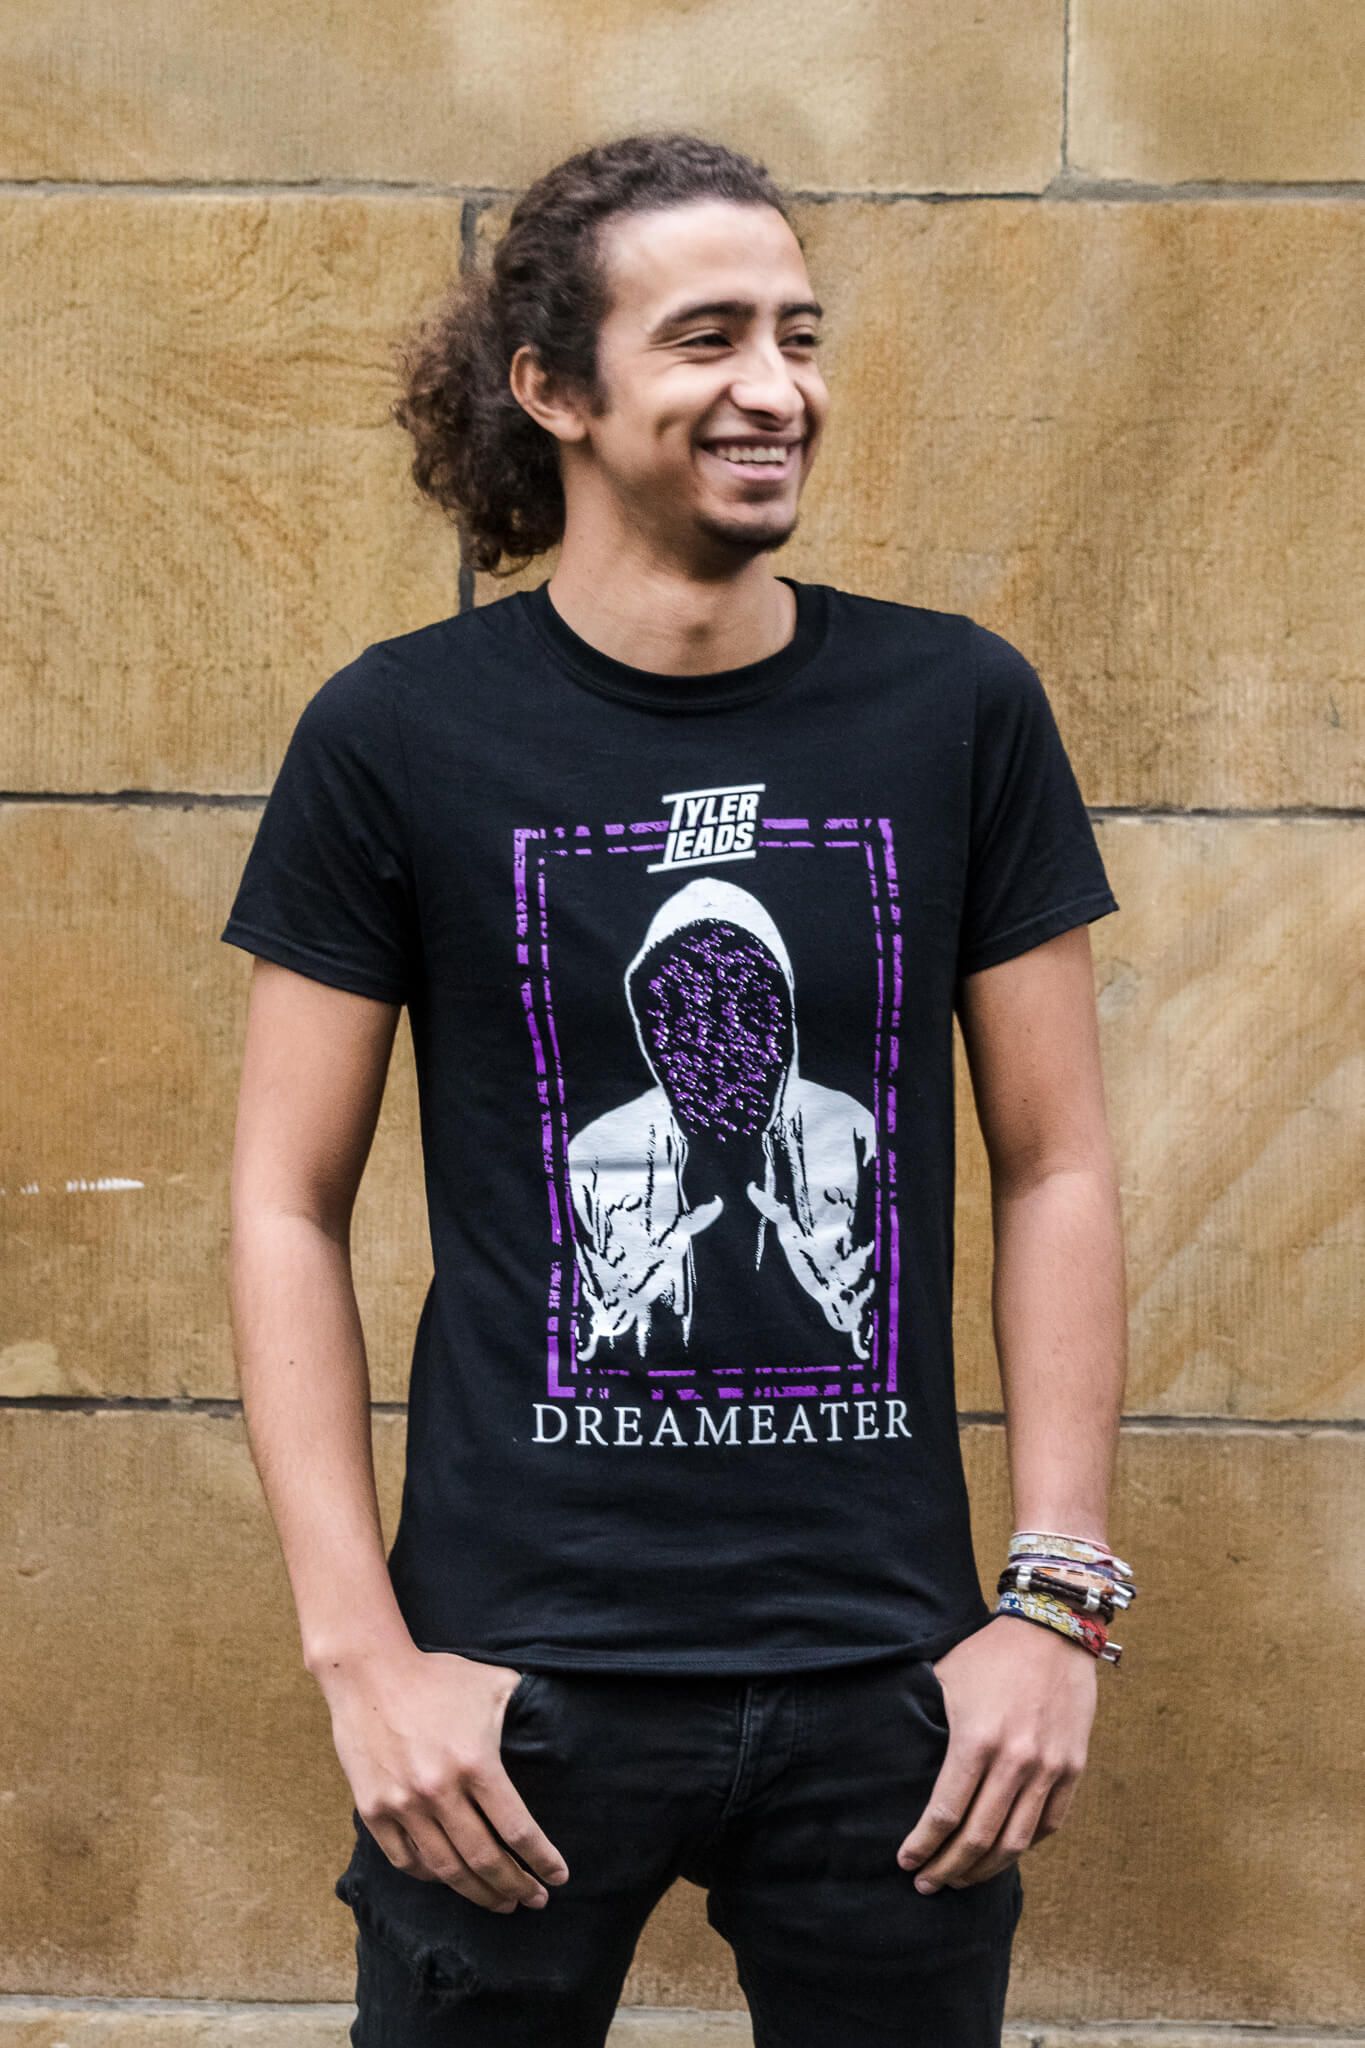 Dreameater T-Shirt